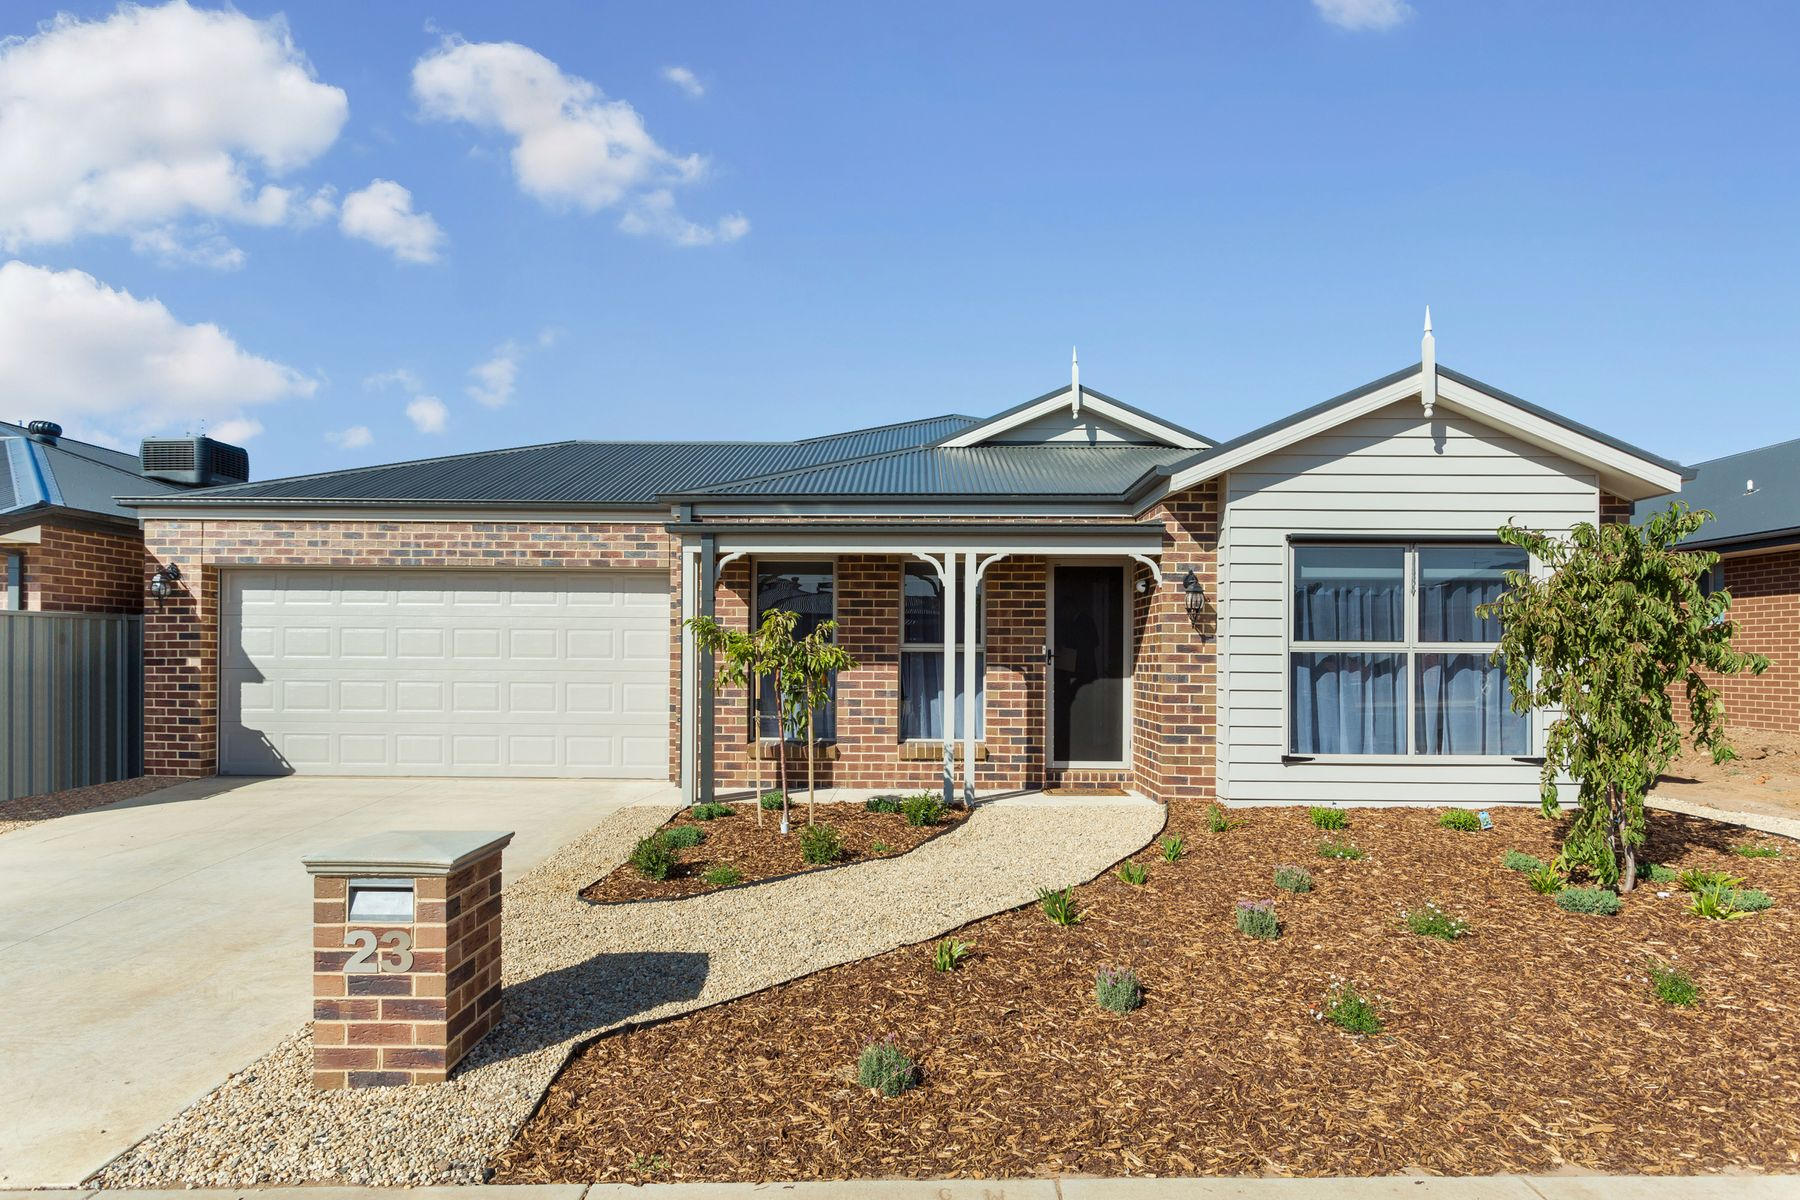 23 Parnell Street, Marong, VIC 3515